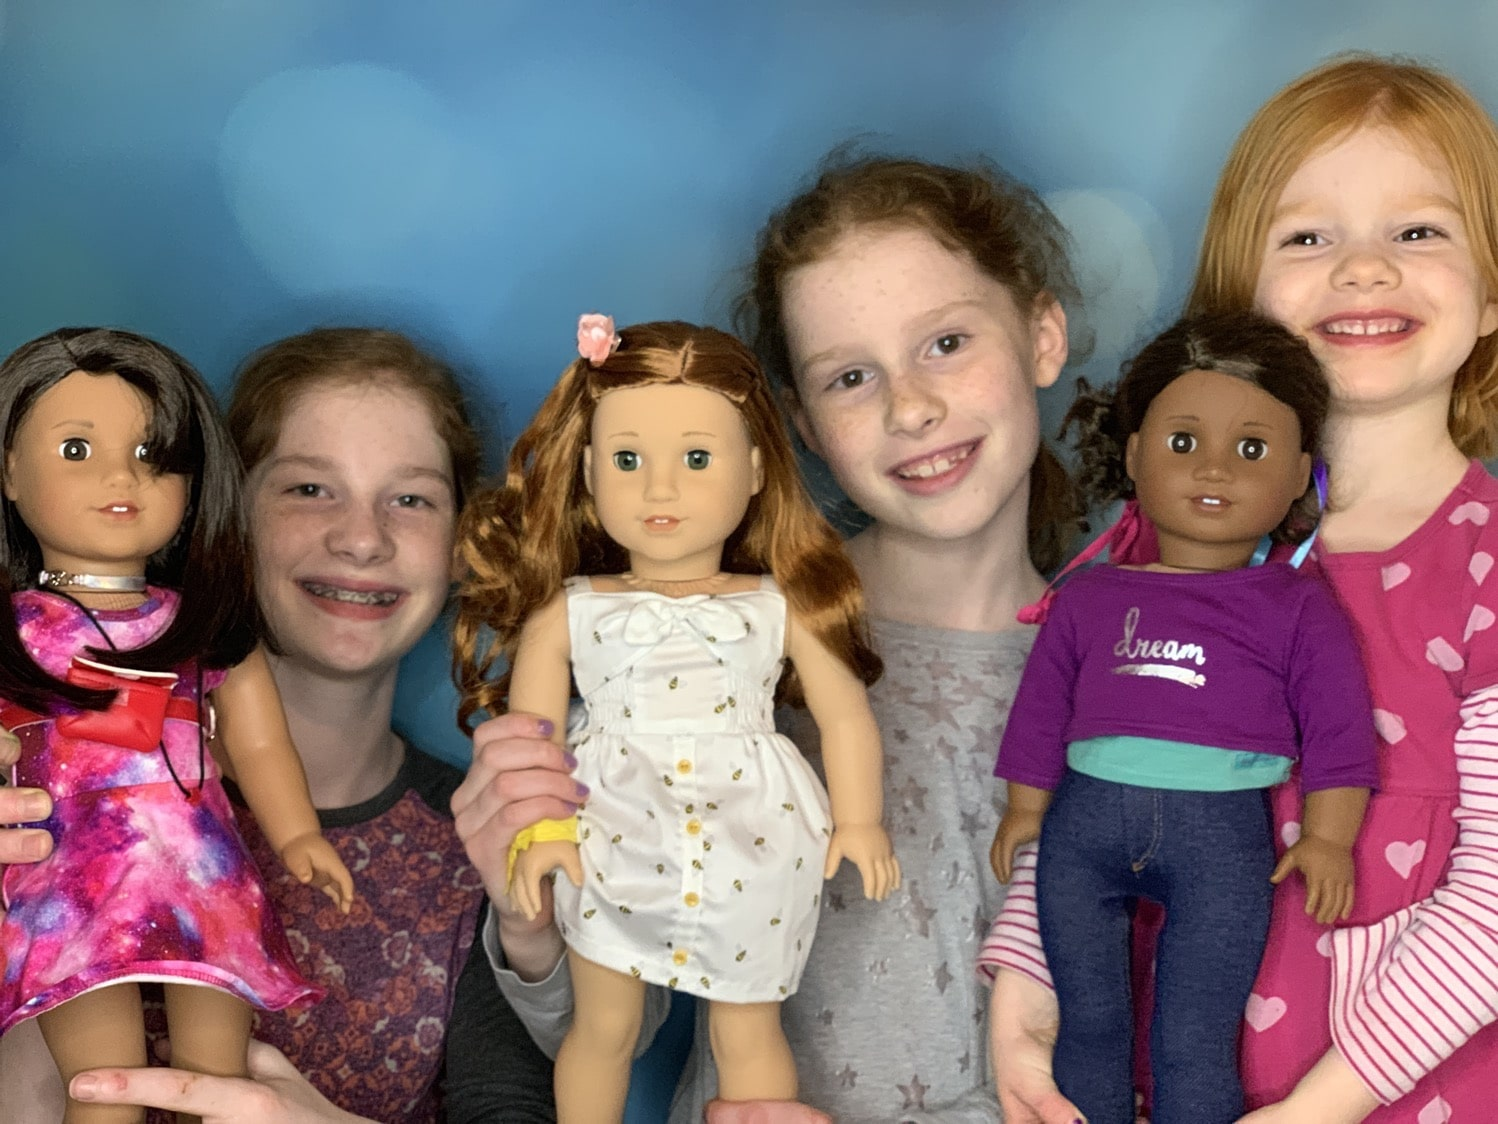 Blaire Wilson American Girl's 2019 Girl of the Year